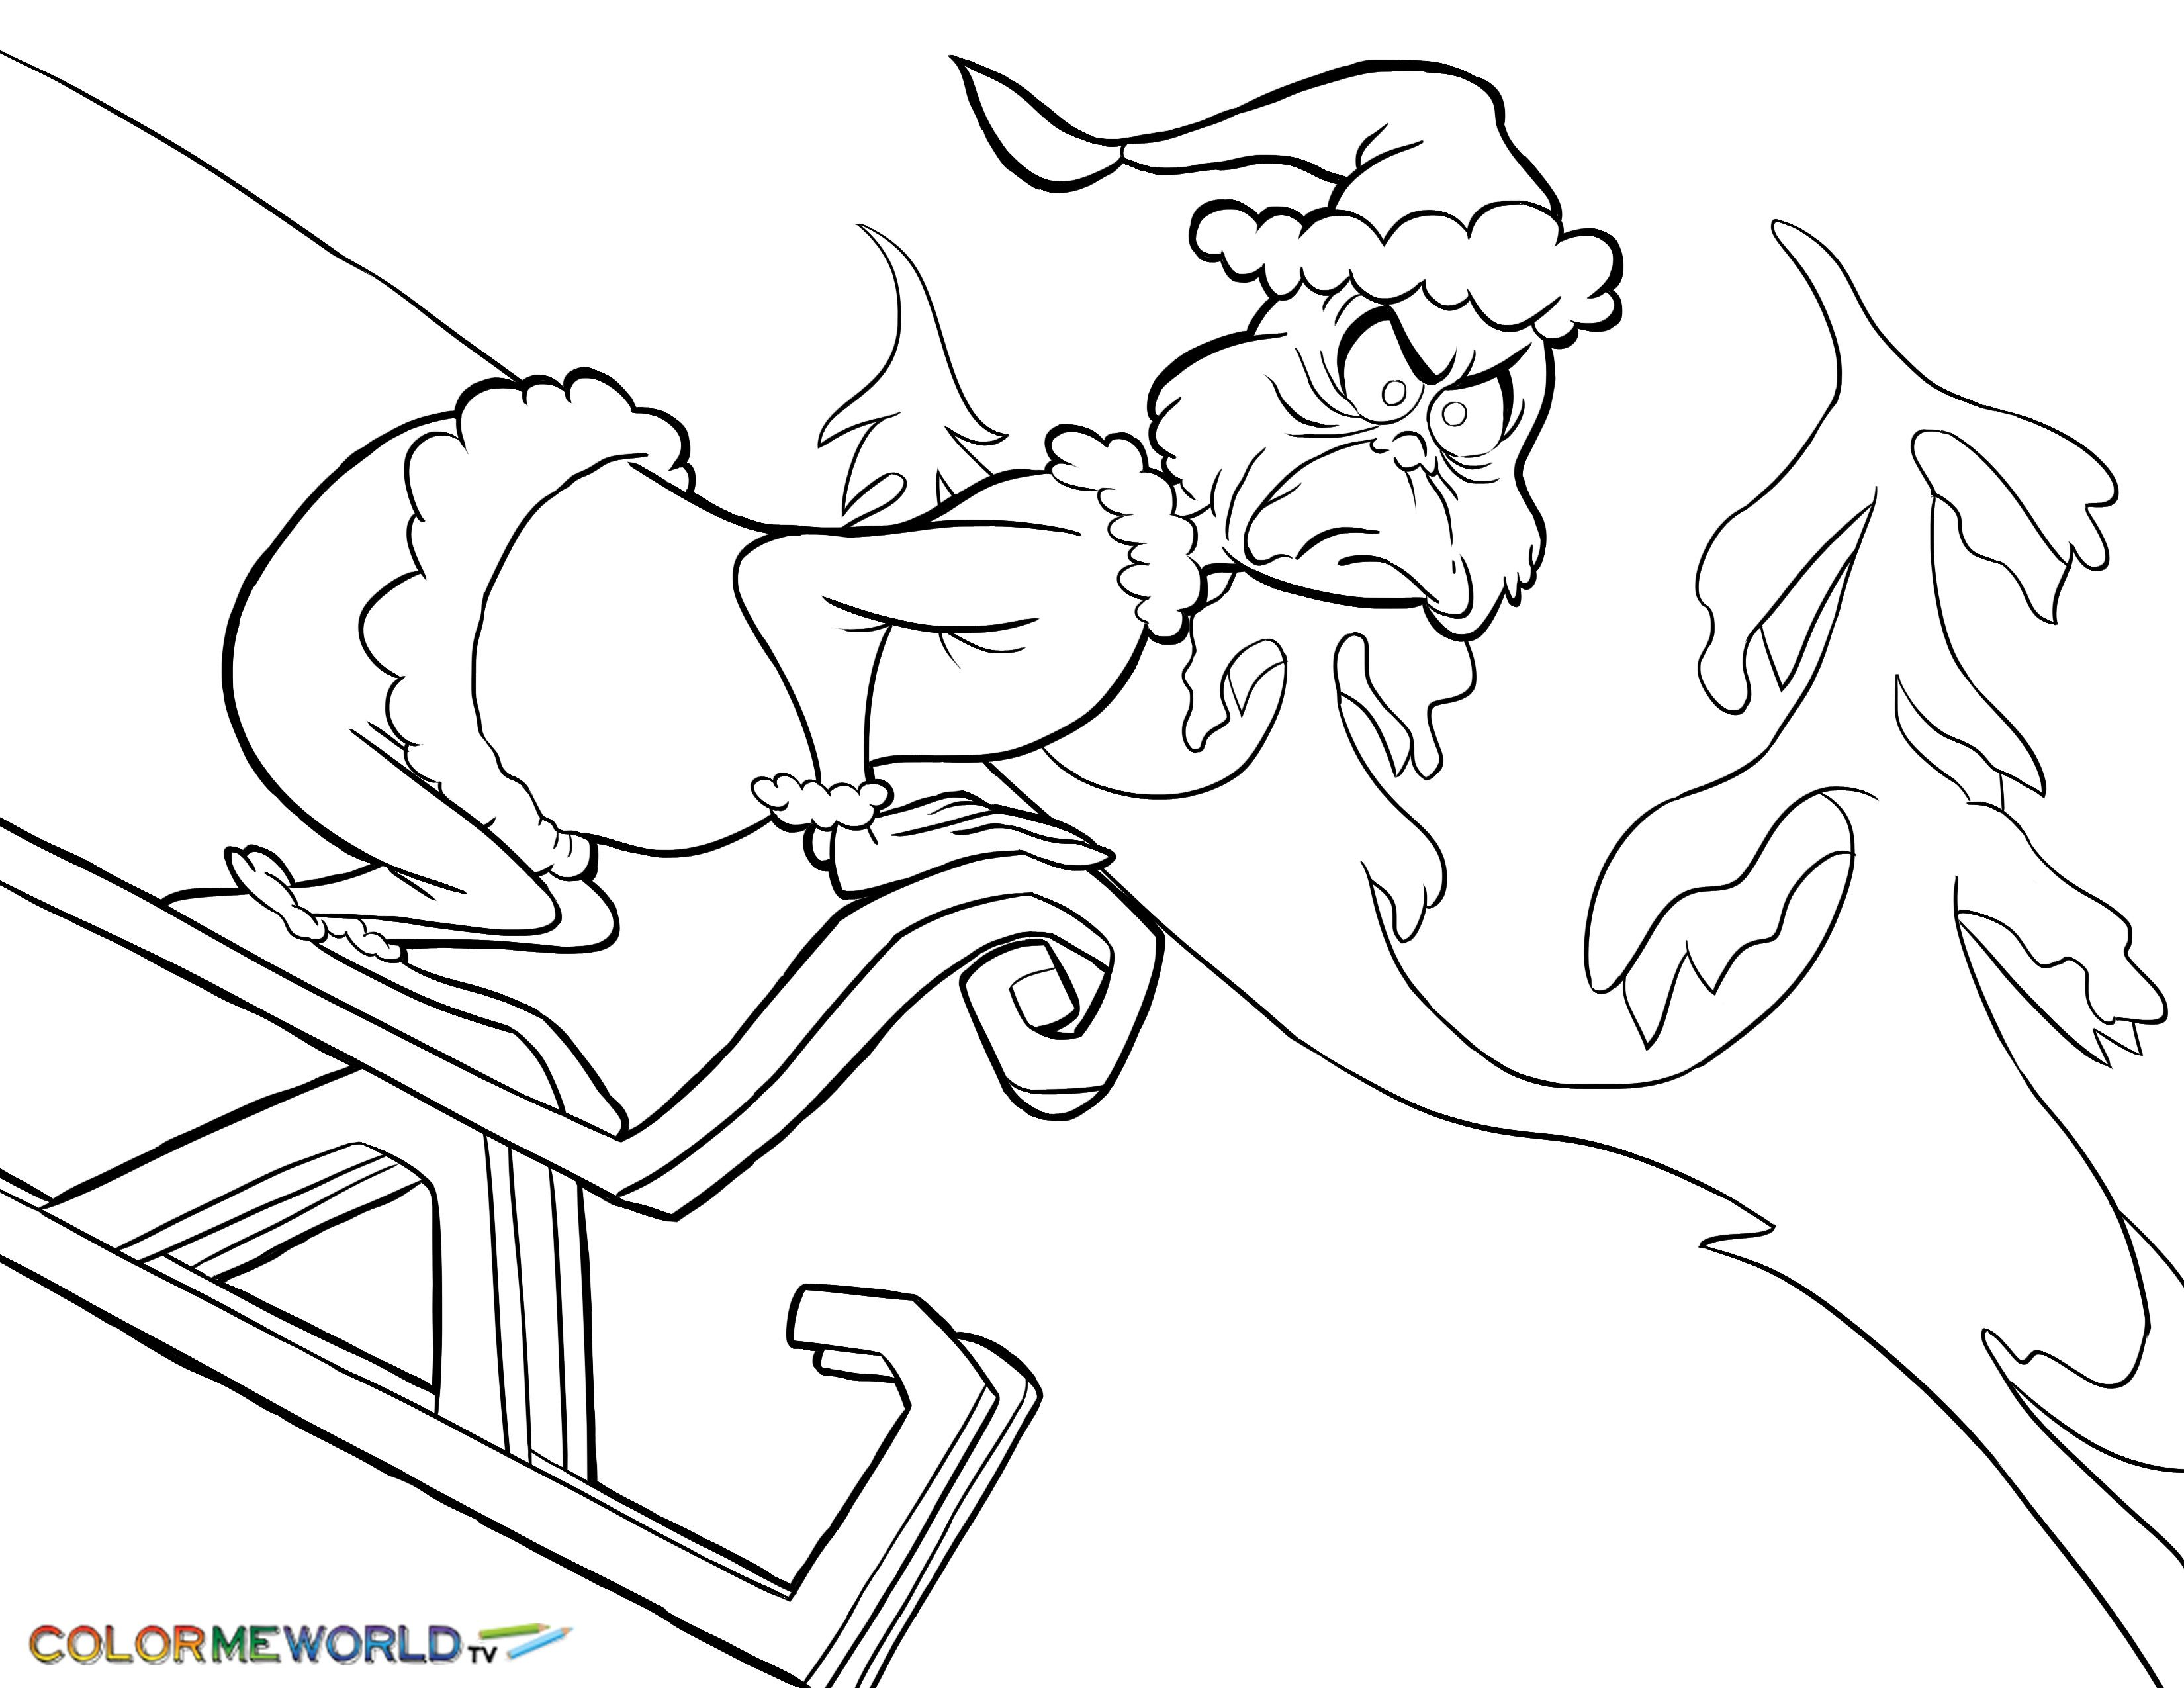 3300x2550 The Grinch Coloring Pages Free Printable The Grinch Pdf Coloring